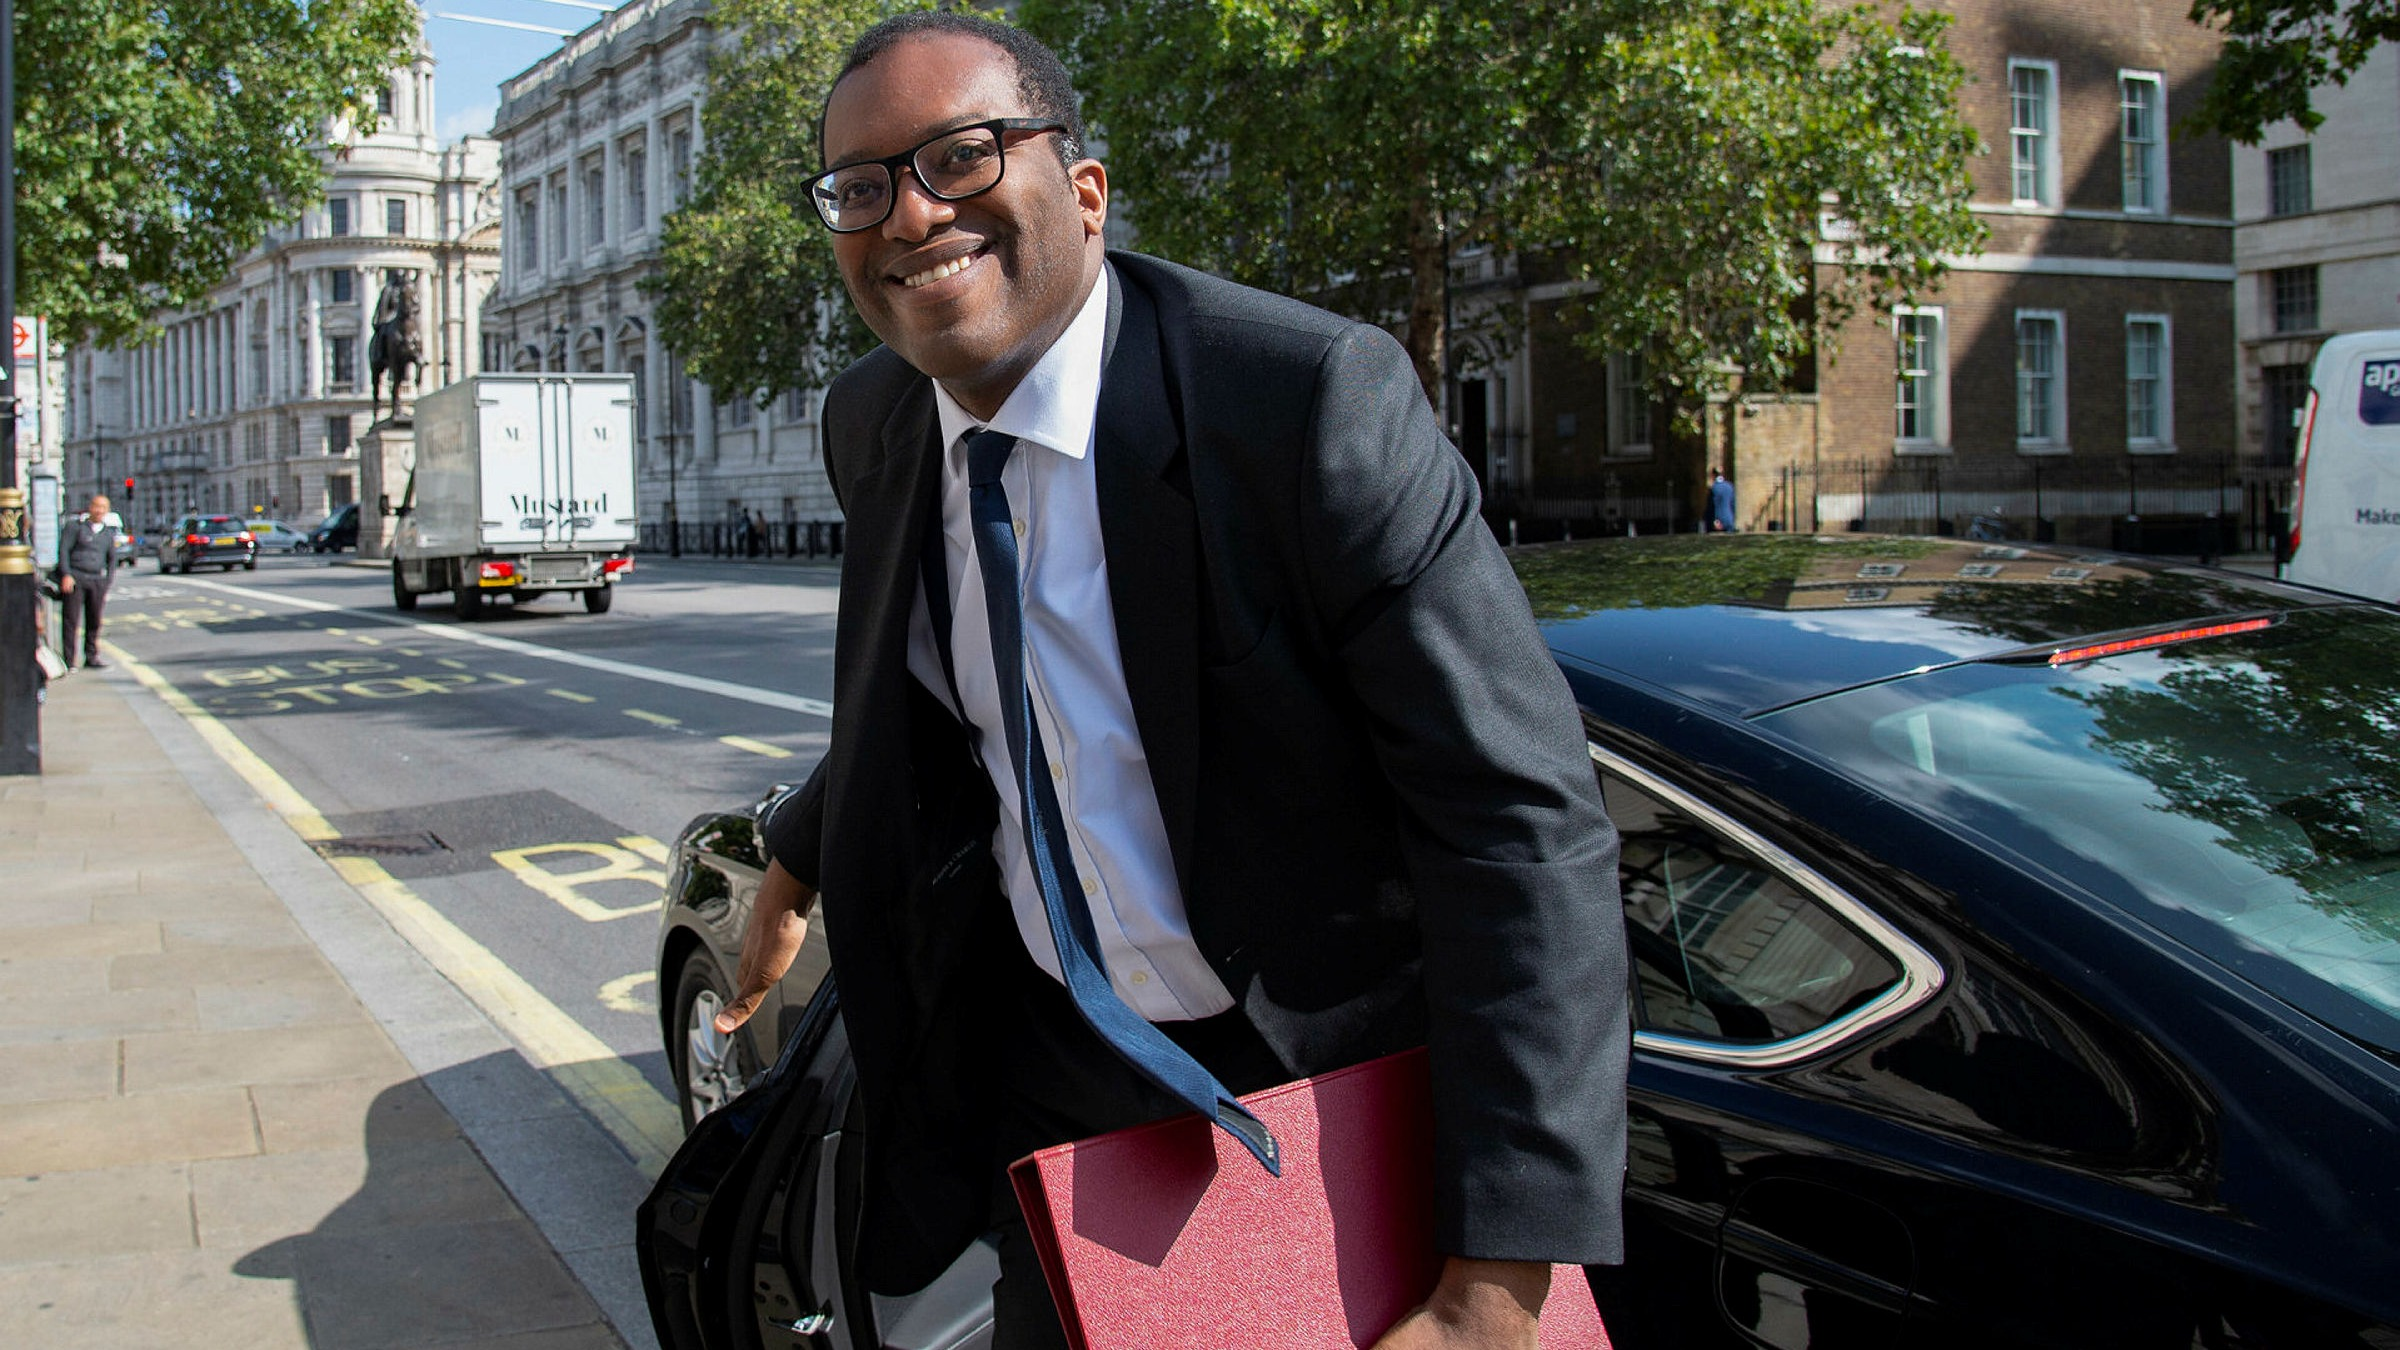 ft.com - Jim Pickard in London and Nathalie Thomas in Edinburgh - Kwasi Kwarteng, the free marketeer learning benefits of state action